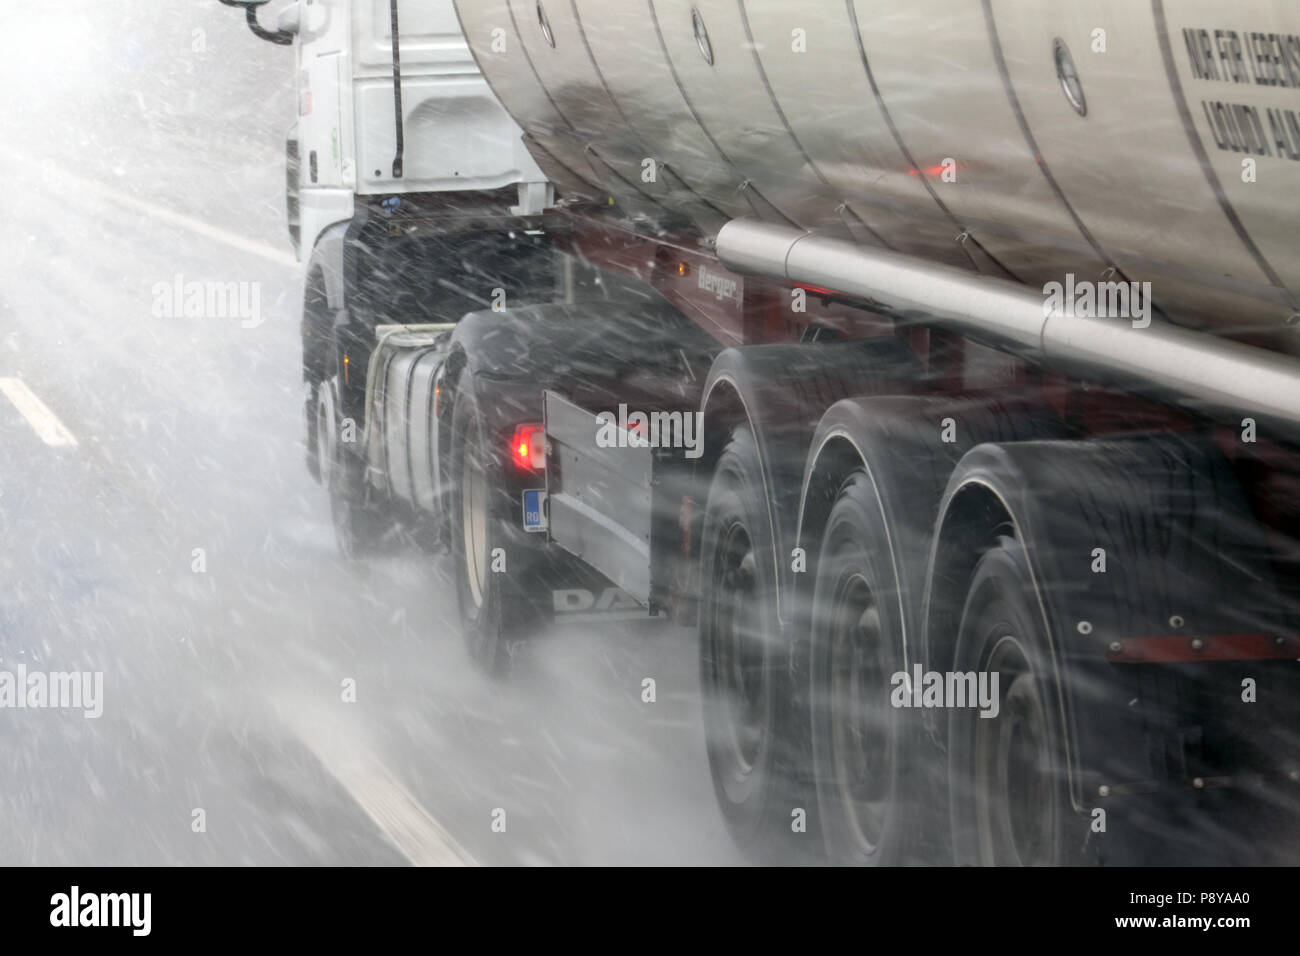 Muenchen, Germany, bleed, truck in snowfall on the highway - Stock Image